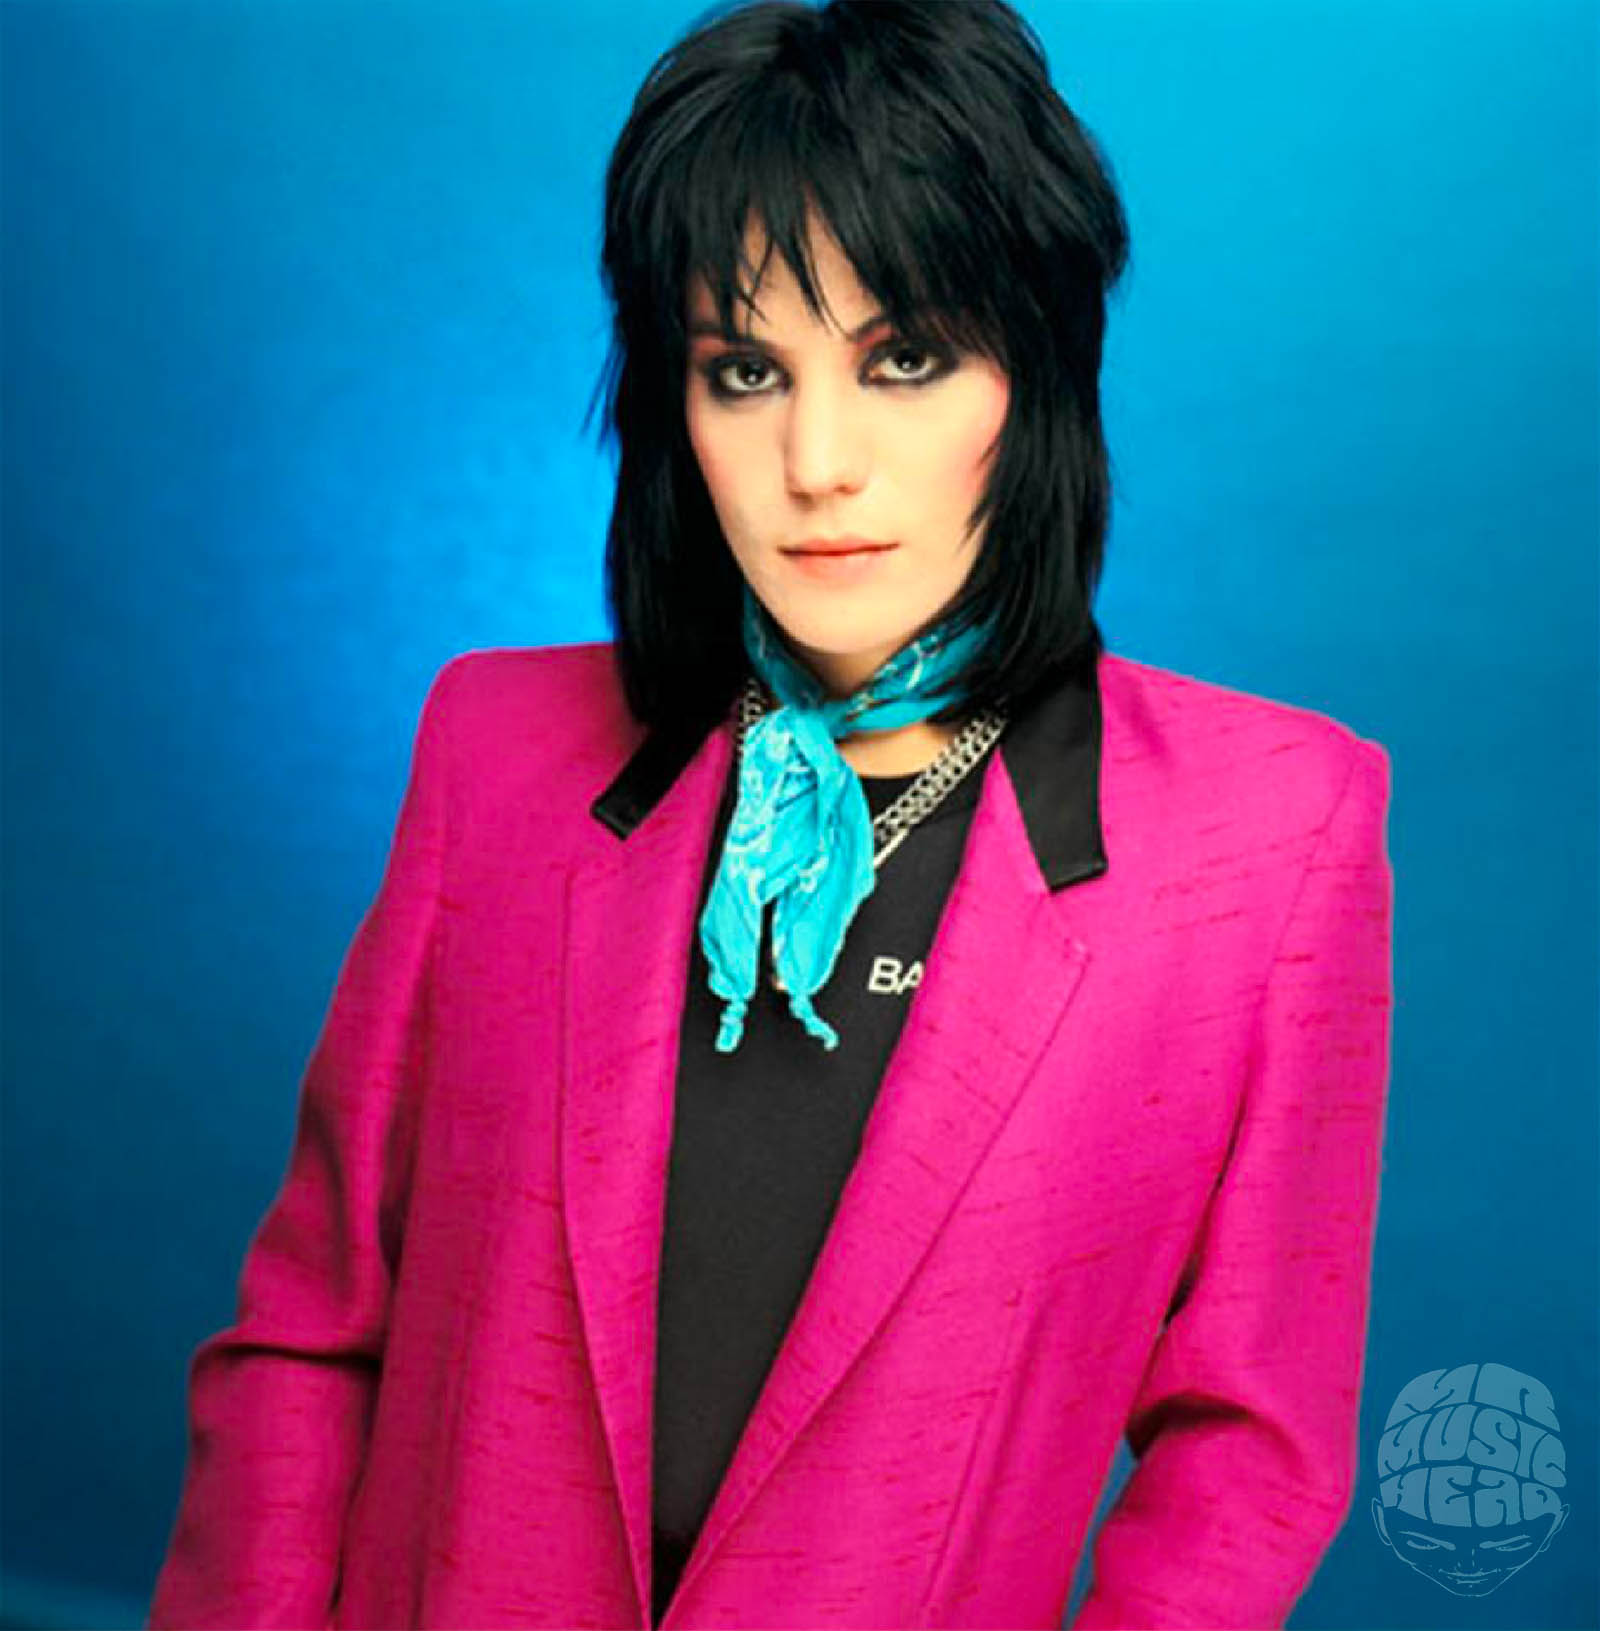 mick rock_joan jett.jpg